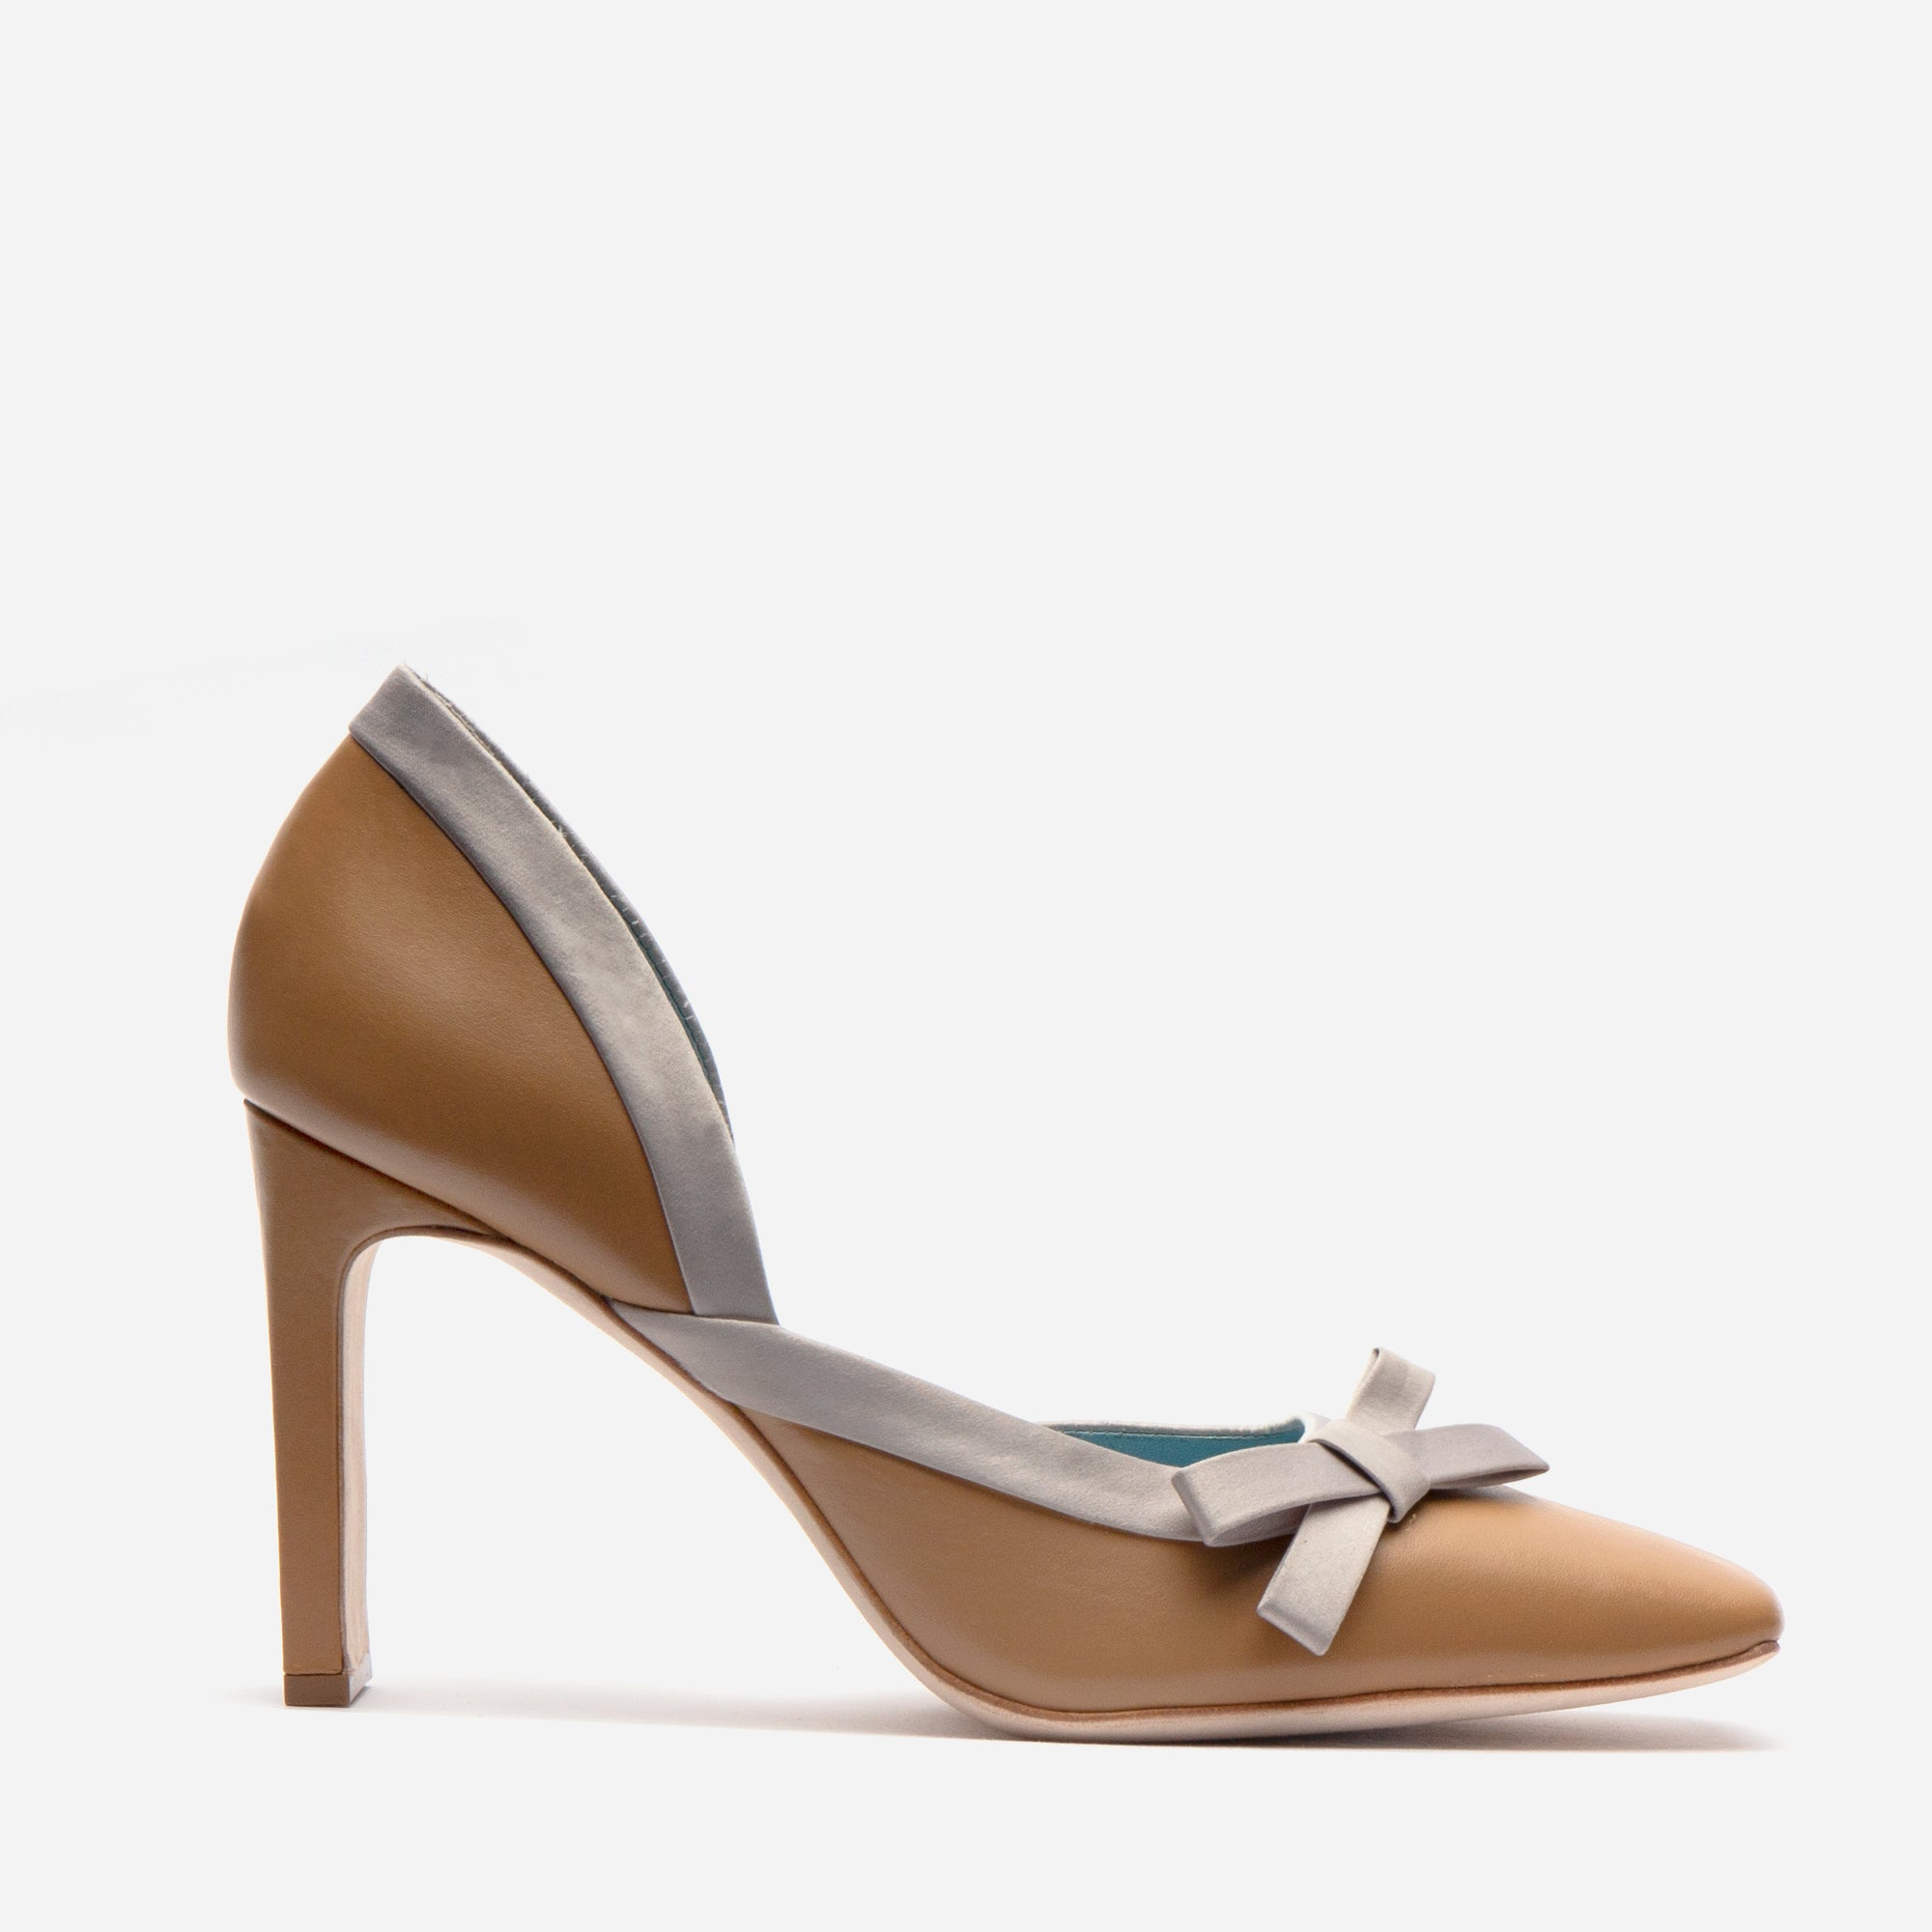 Sinclair Leather Heel Camel Oyster *FINAL SALE*